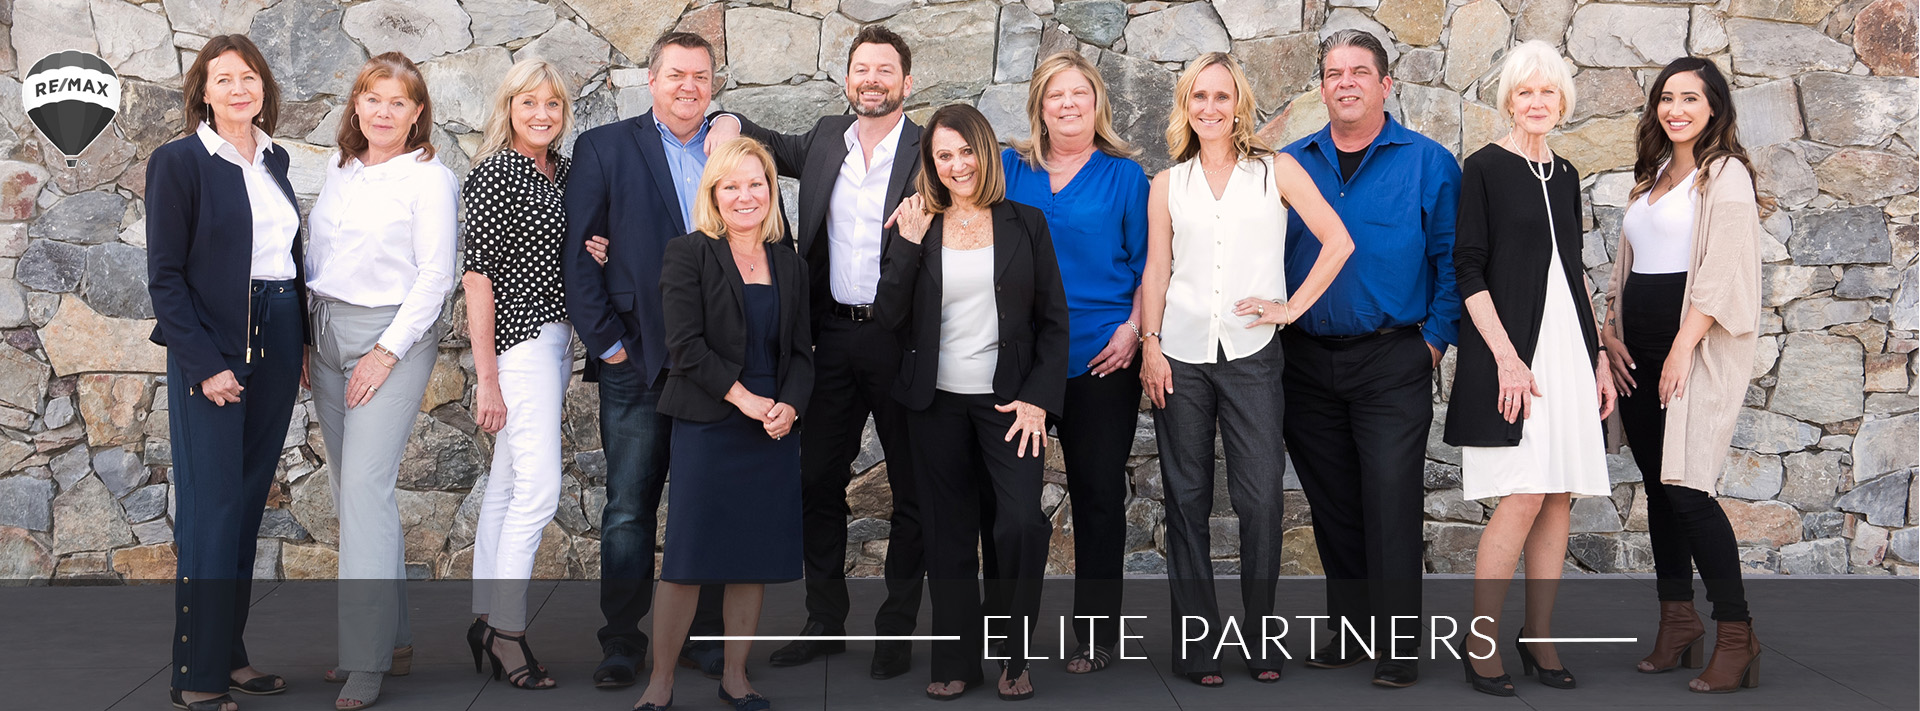 Elite Partners 12- 2019-web-relaxed